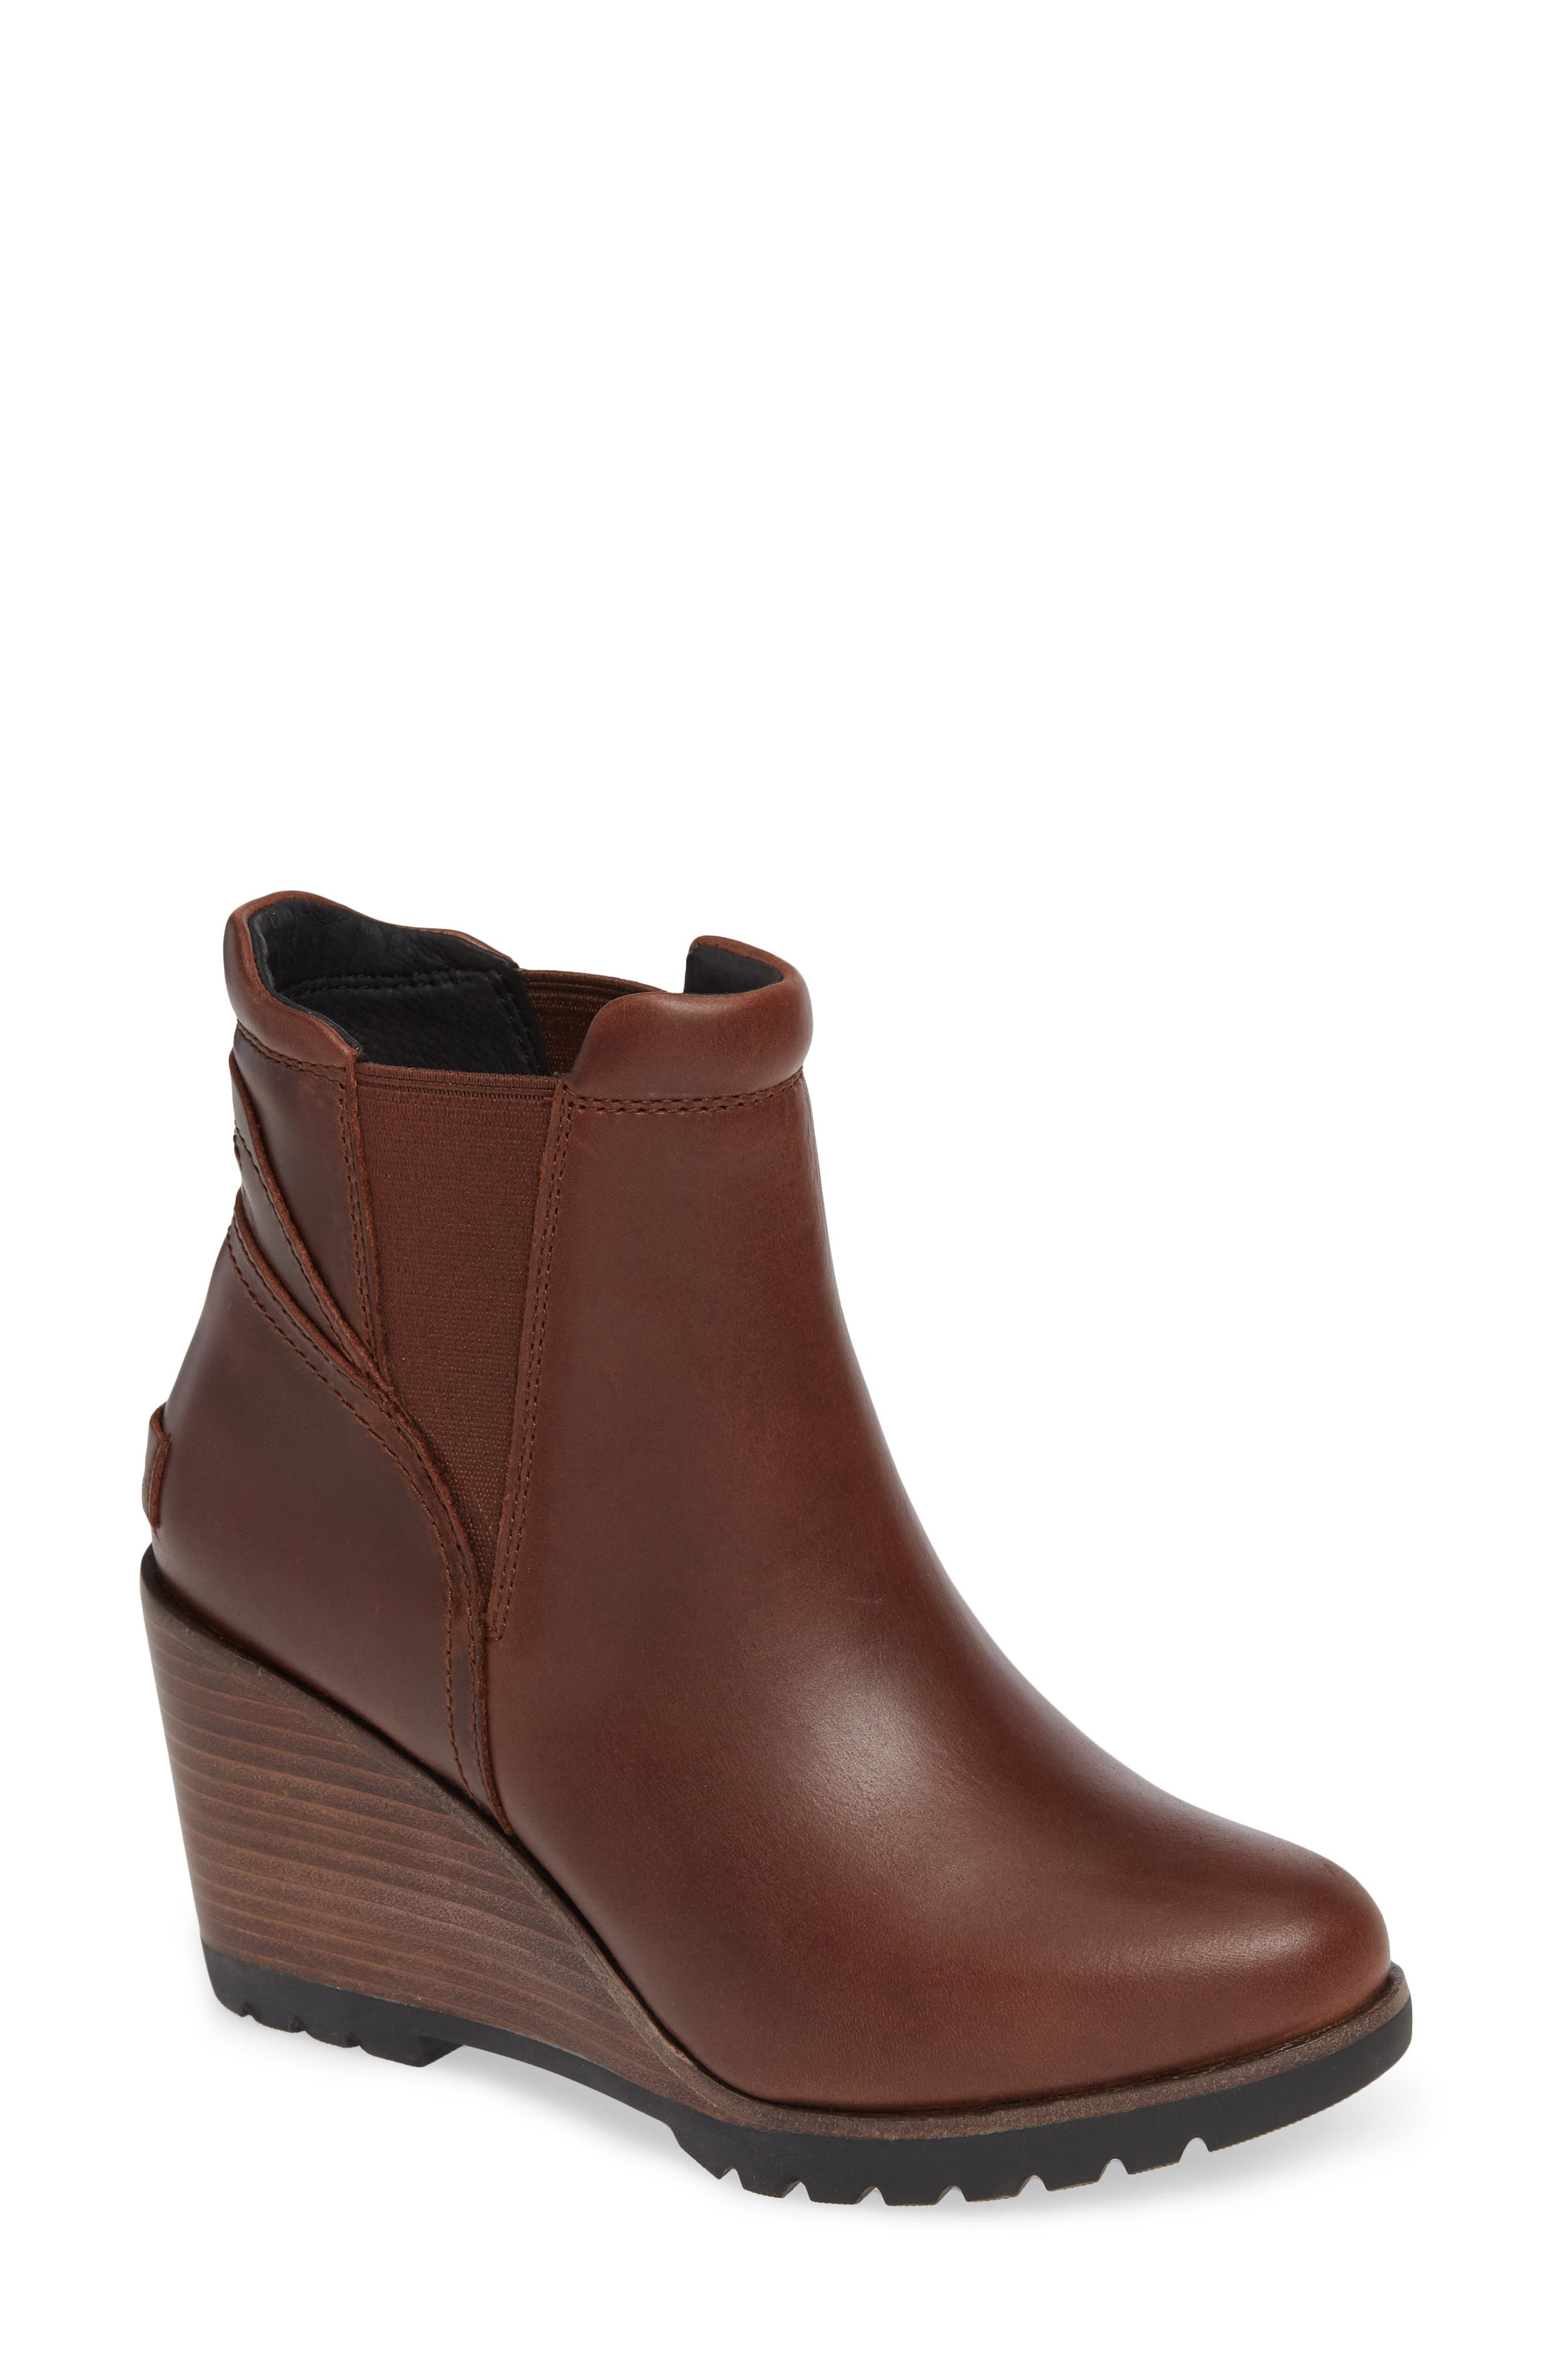 After Hours Chelsea Boot,                             Main thumbnail 1, color,                             200